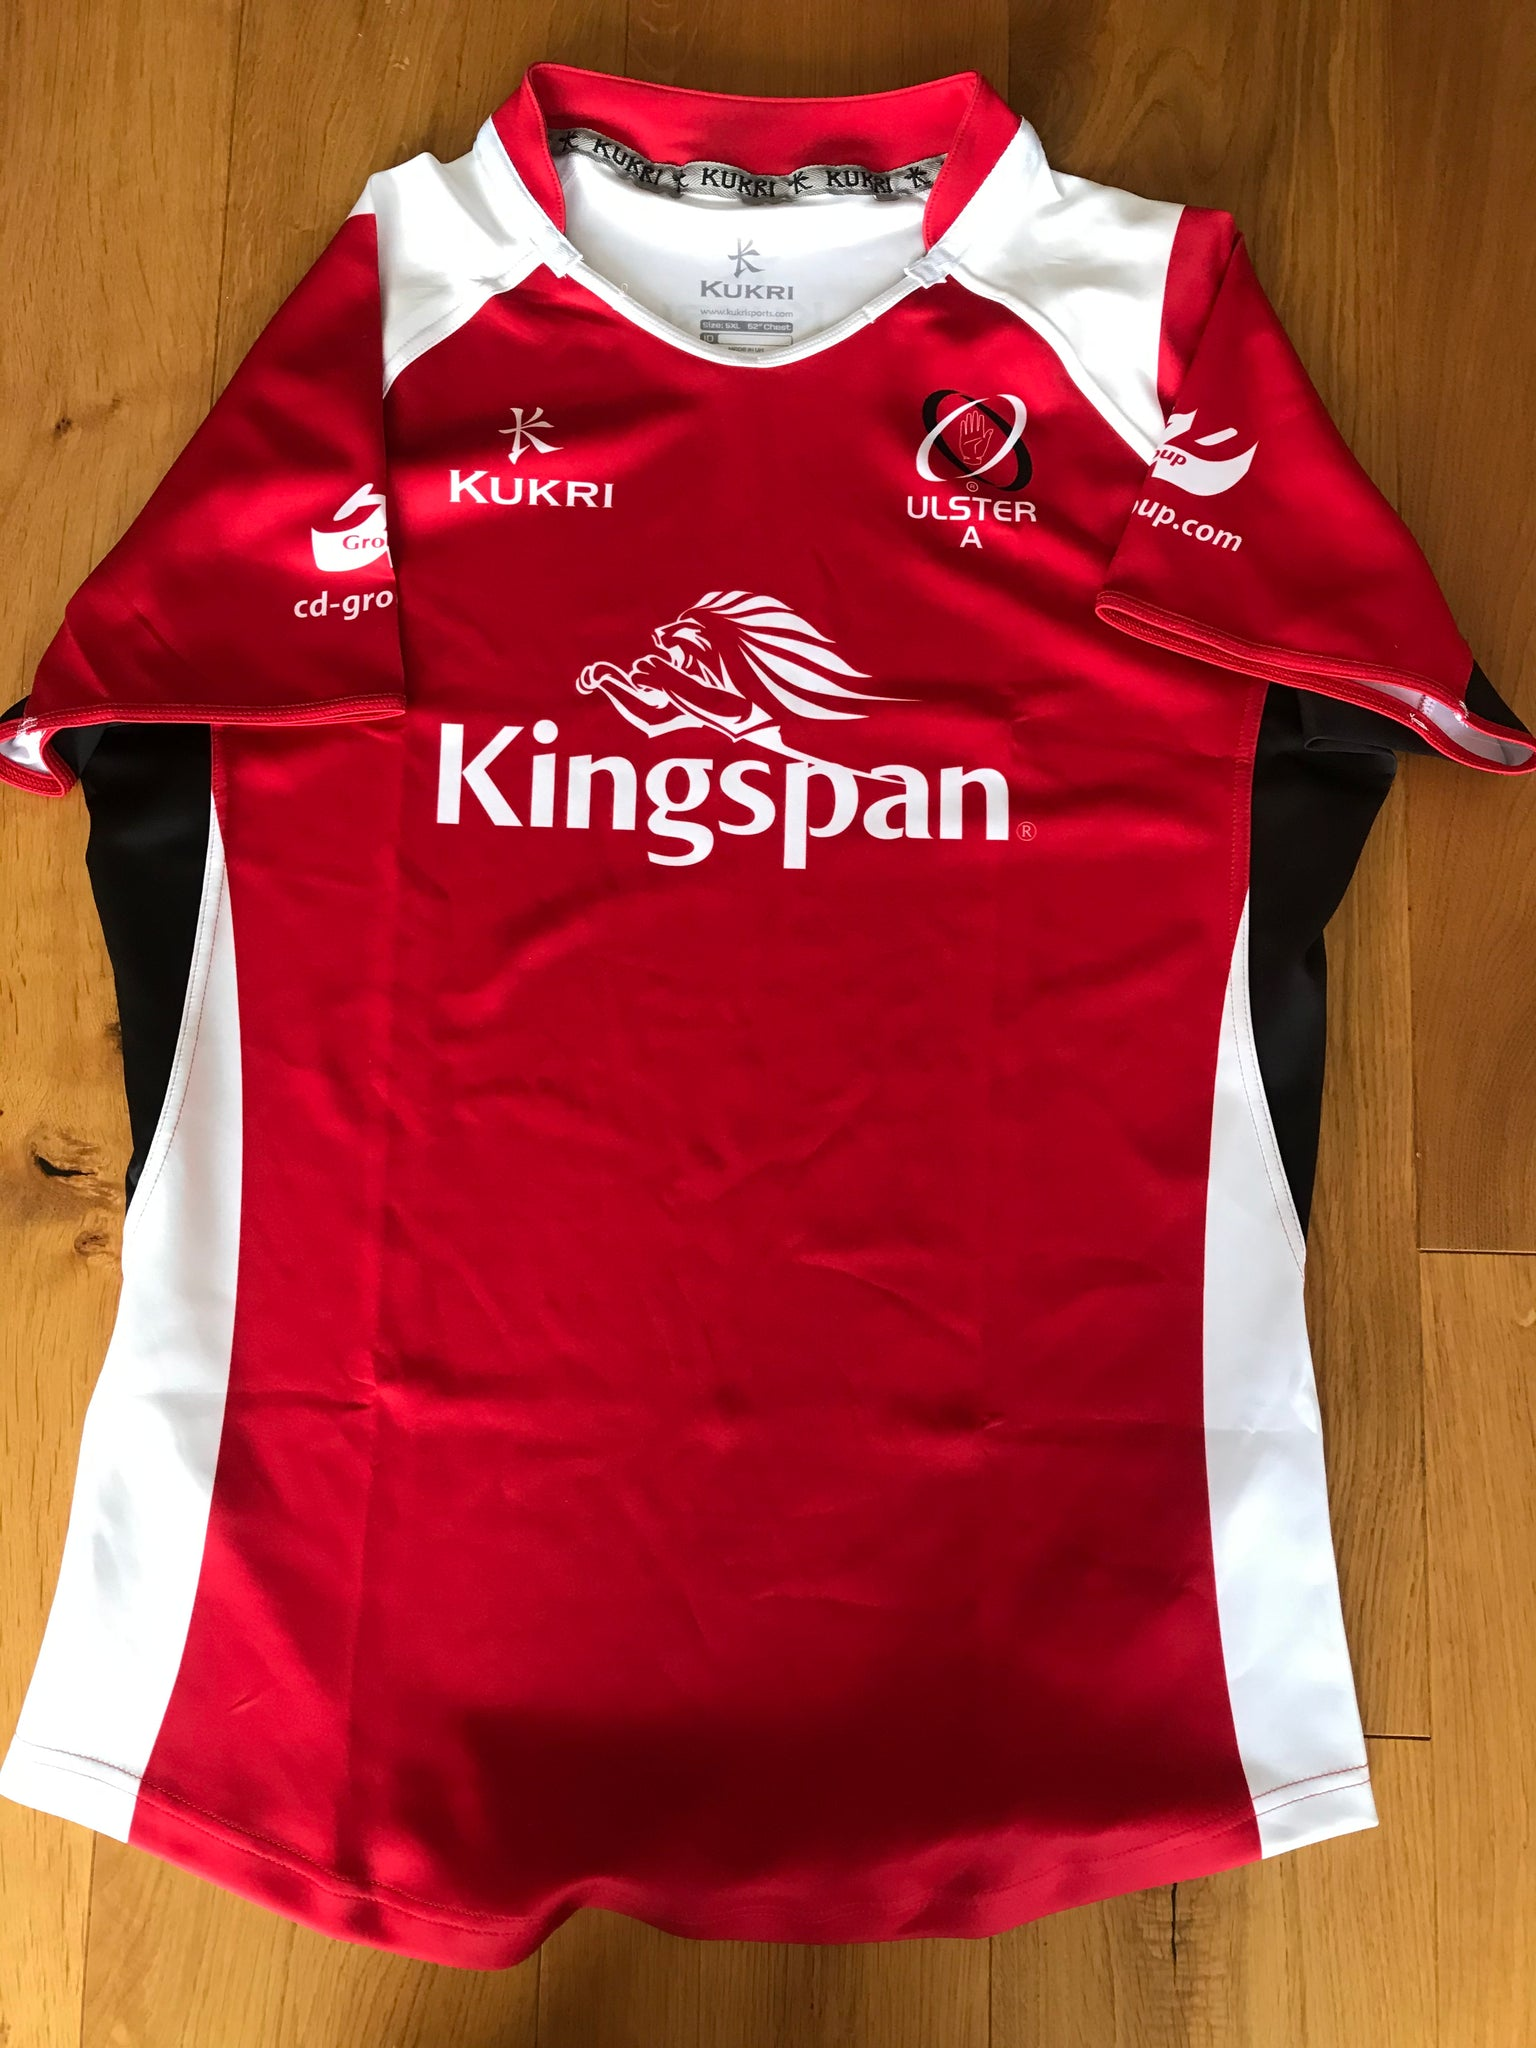 Ulster Rugby - Ulster A Match Shirt [Red, White & Black]